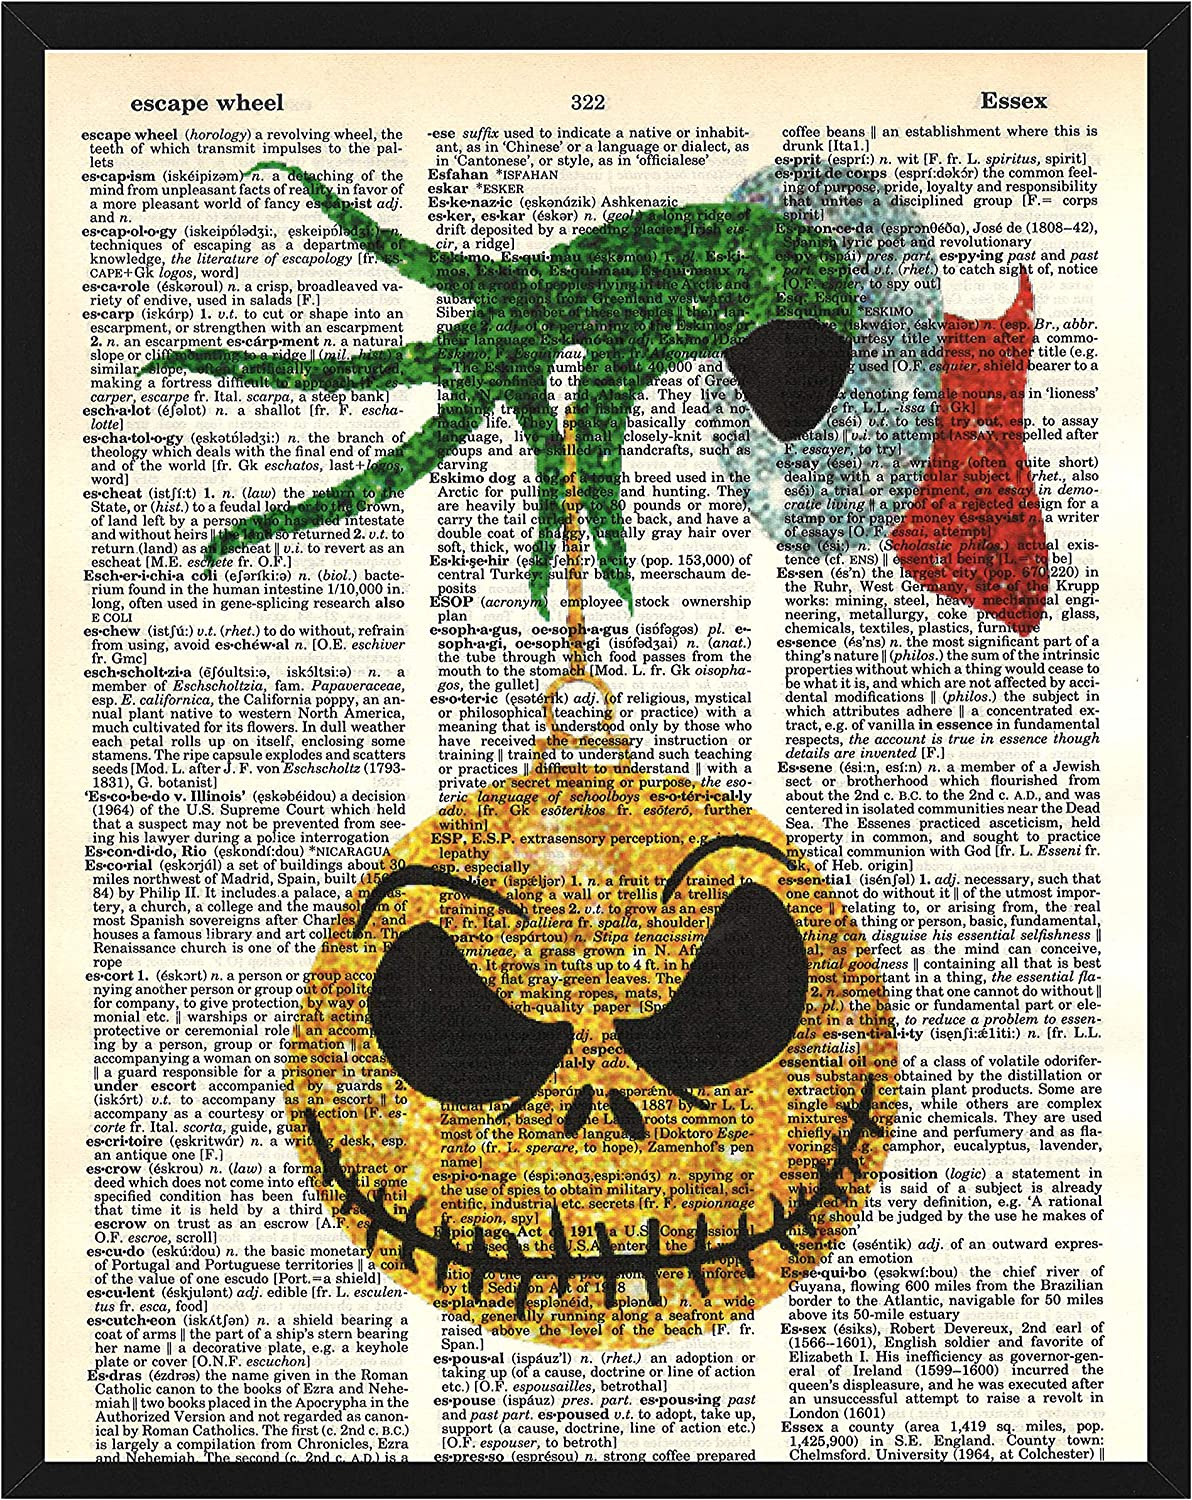 Jack Skellington with The Grinch Christmas Decoration Wall Decor Jack Skellington and How The Grinch Stole Christmas Dictionary Art Print 8 x 10